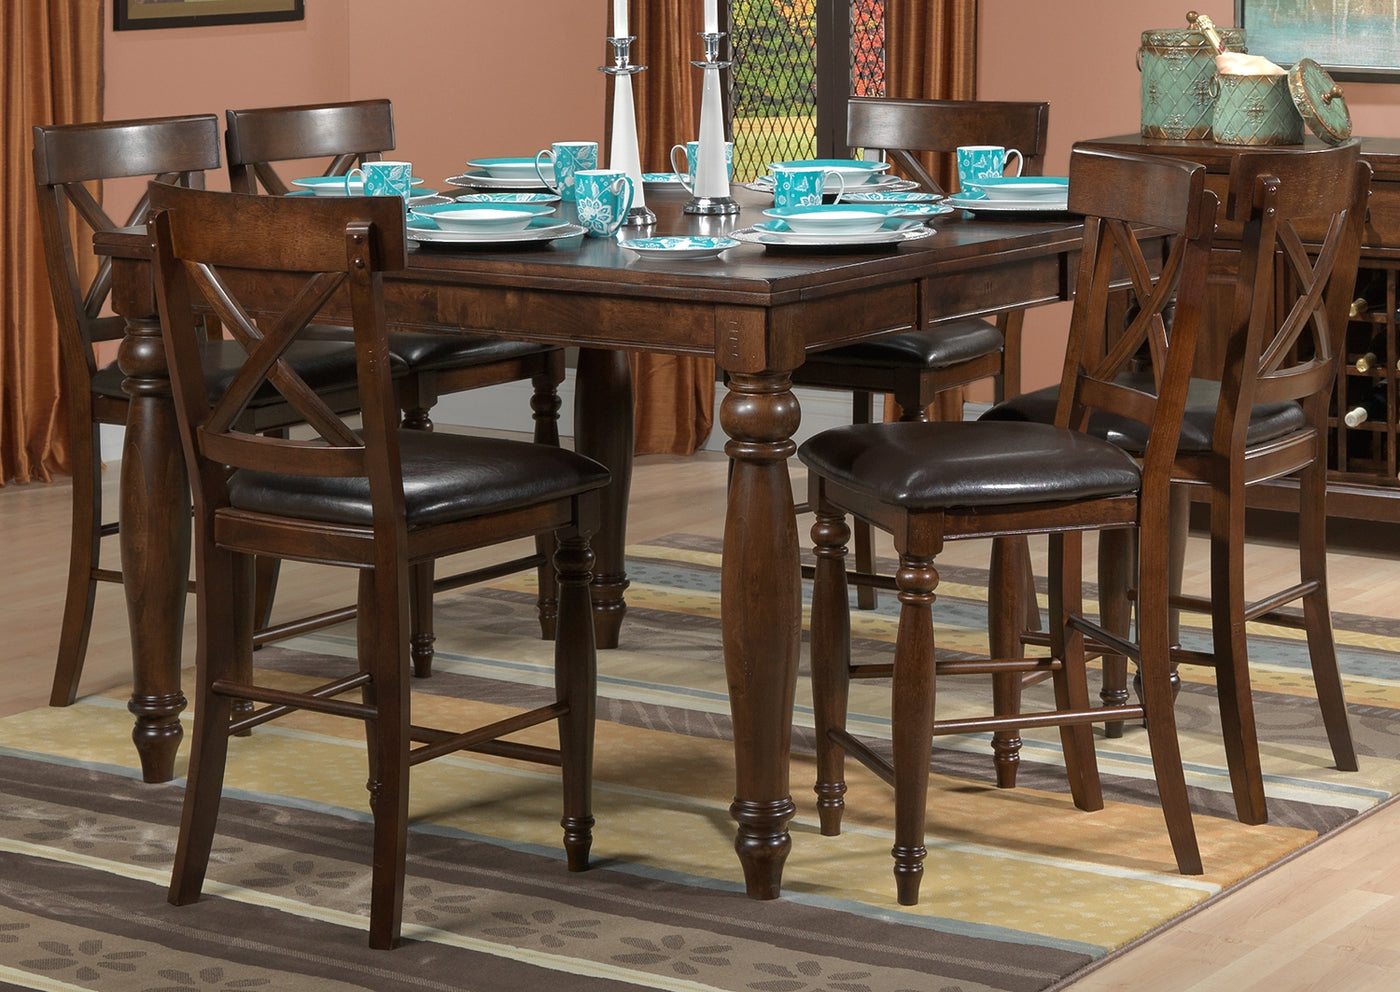 pub style dining table set> OFF 9